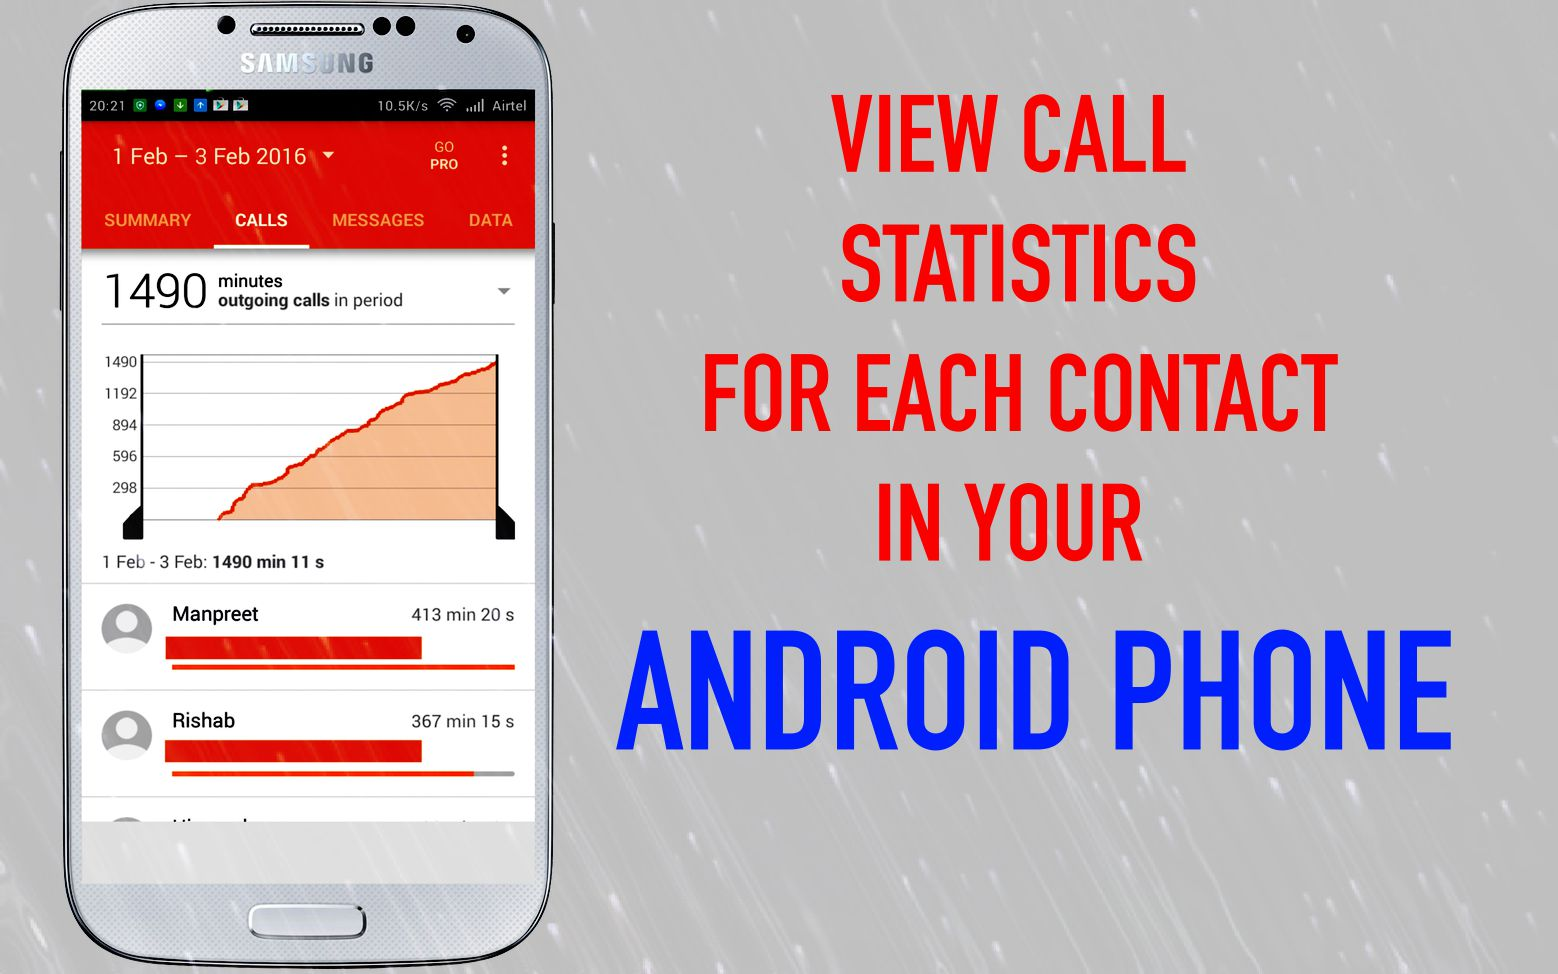 How to View Call Statistics for Each Contact on your Android Phone